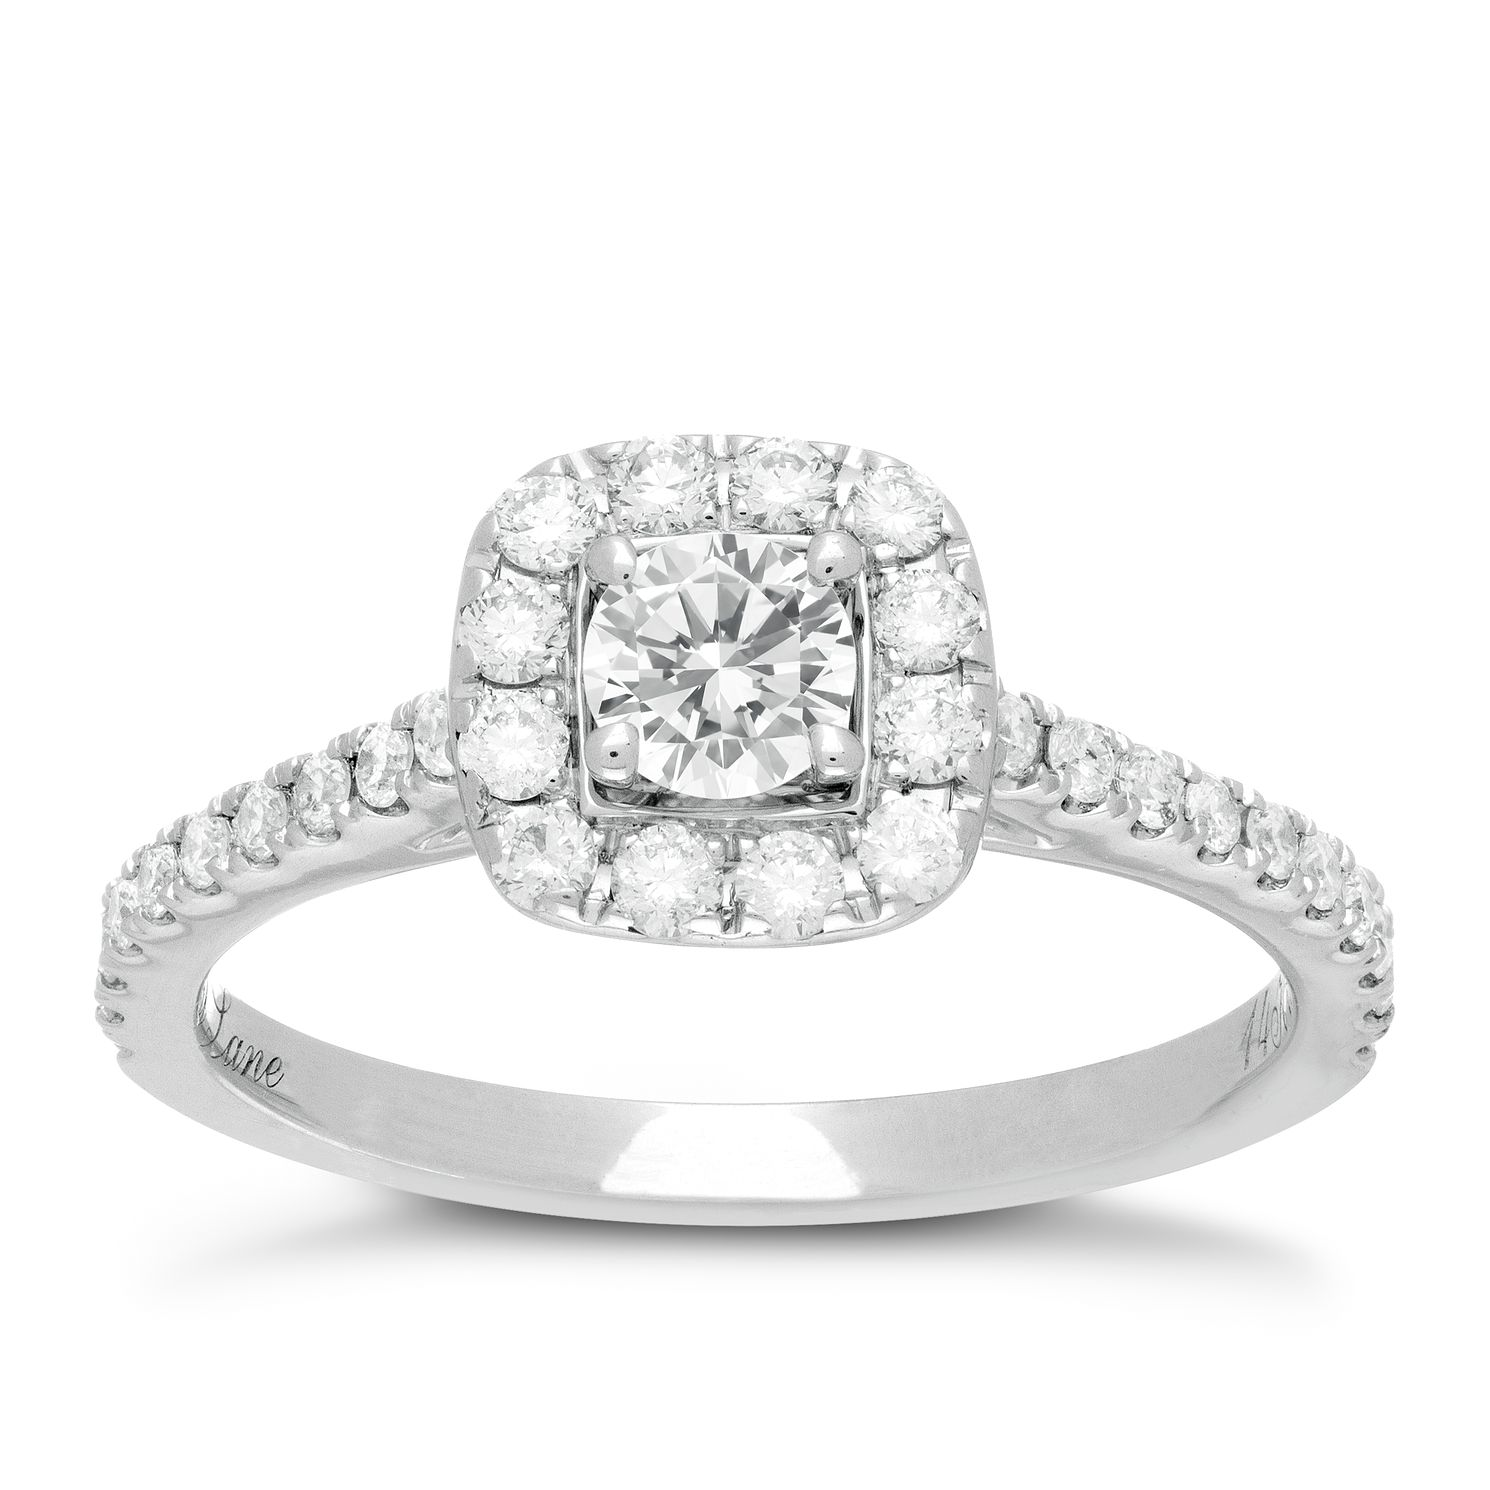 Neil Lane 14ct White Gold 3/4ct Diamond Halo Ring - Product number 1349430